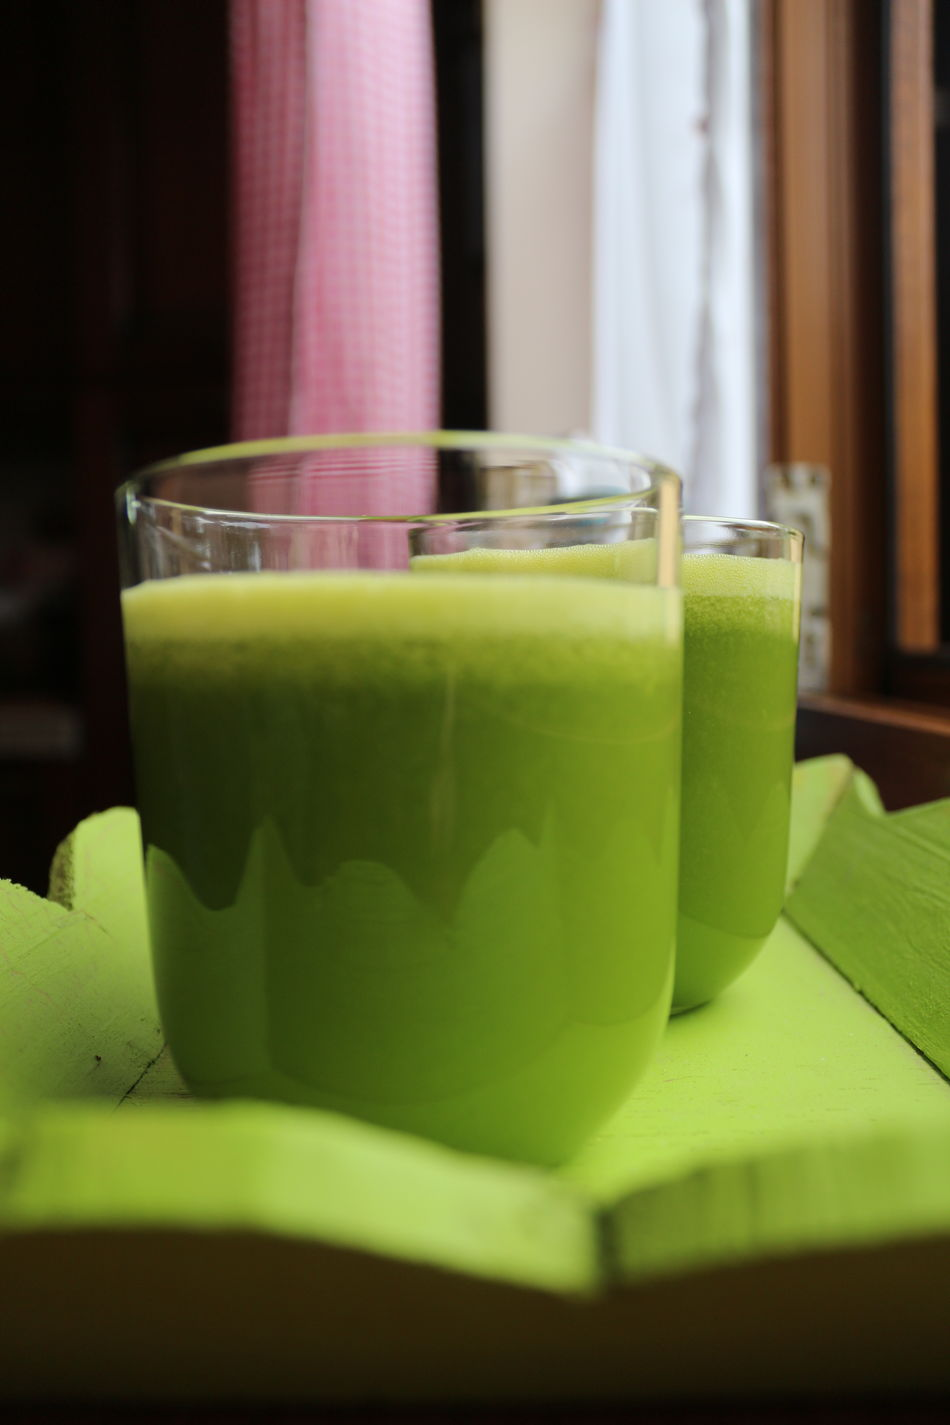 Close-up Empty Focus On Foreground Green Green Color Green Juice Jar No People Refreshment Selective Focus Still Life